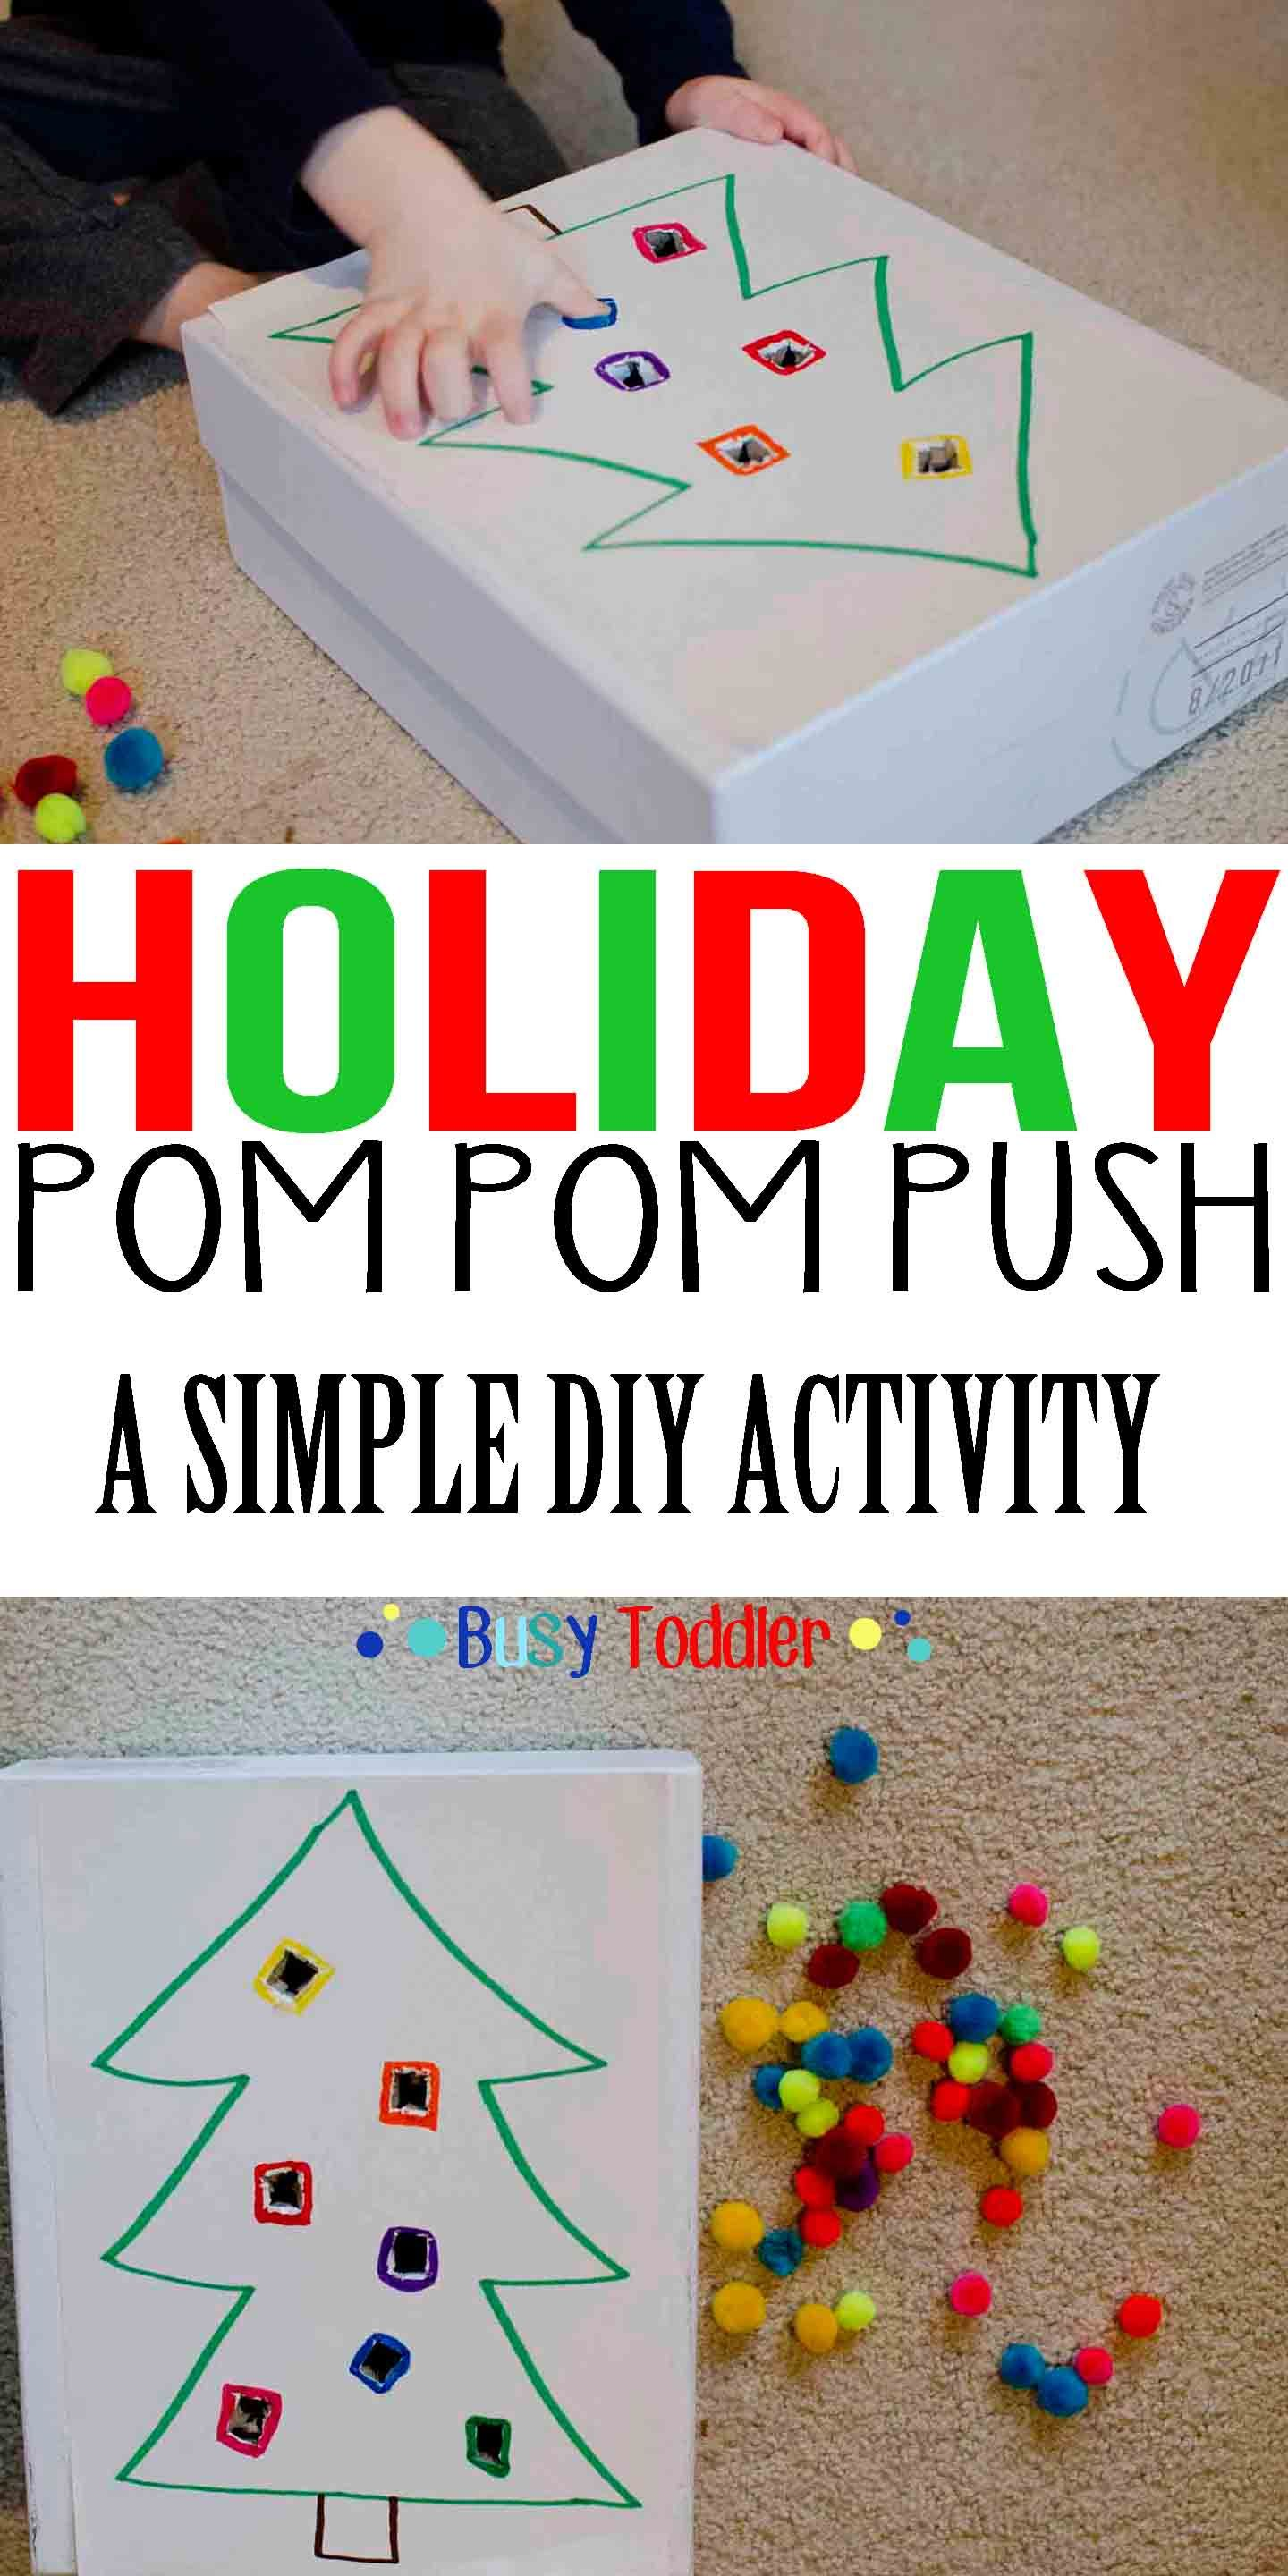 Holiday Pom Pom Push Seb Activities Pinterest Navidad